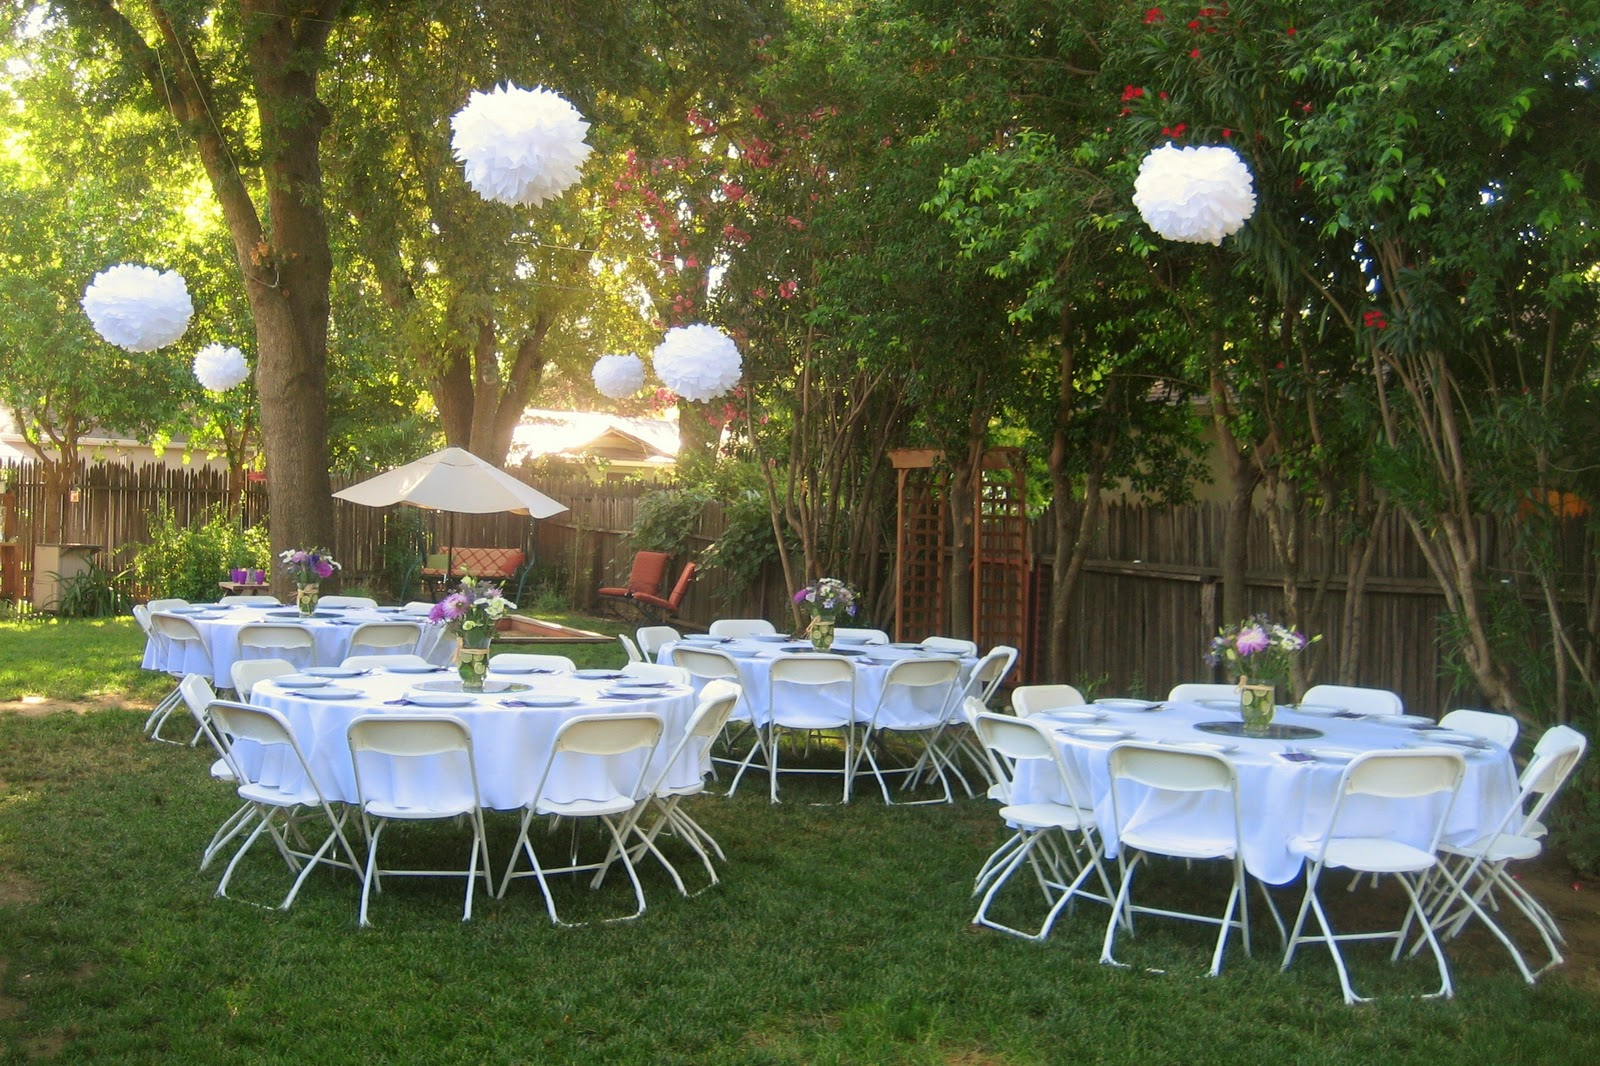 backyard-wedding-party_19913_1600_1066